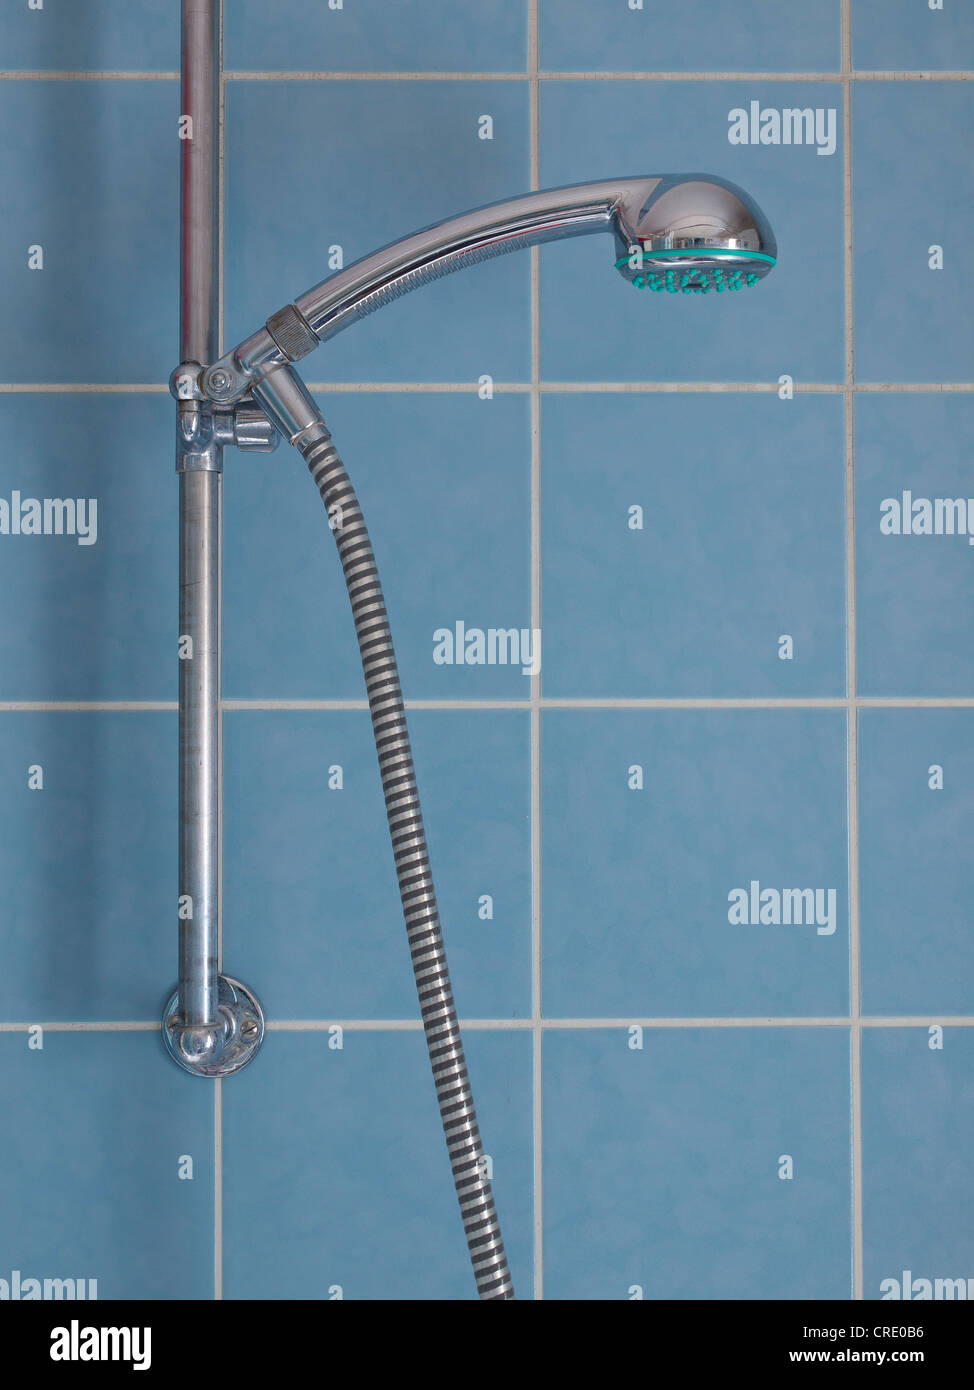 Shower Head Stock Photos & Shower Head Stock Images - Alamy